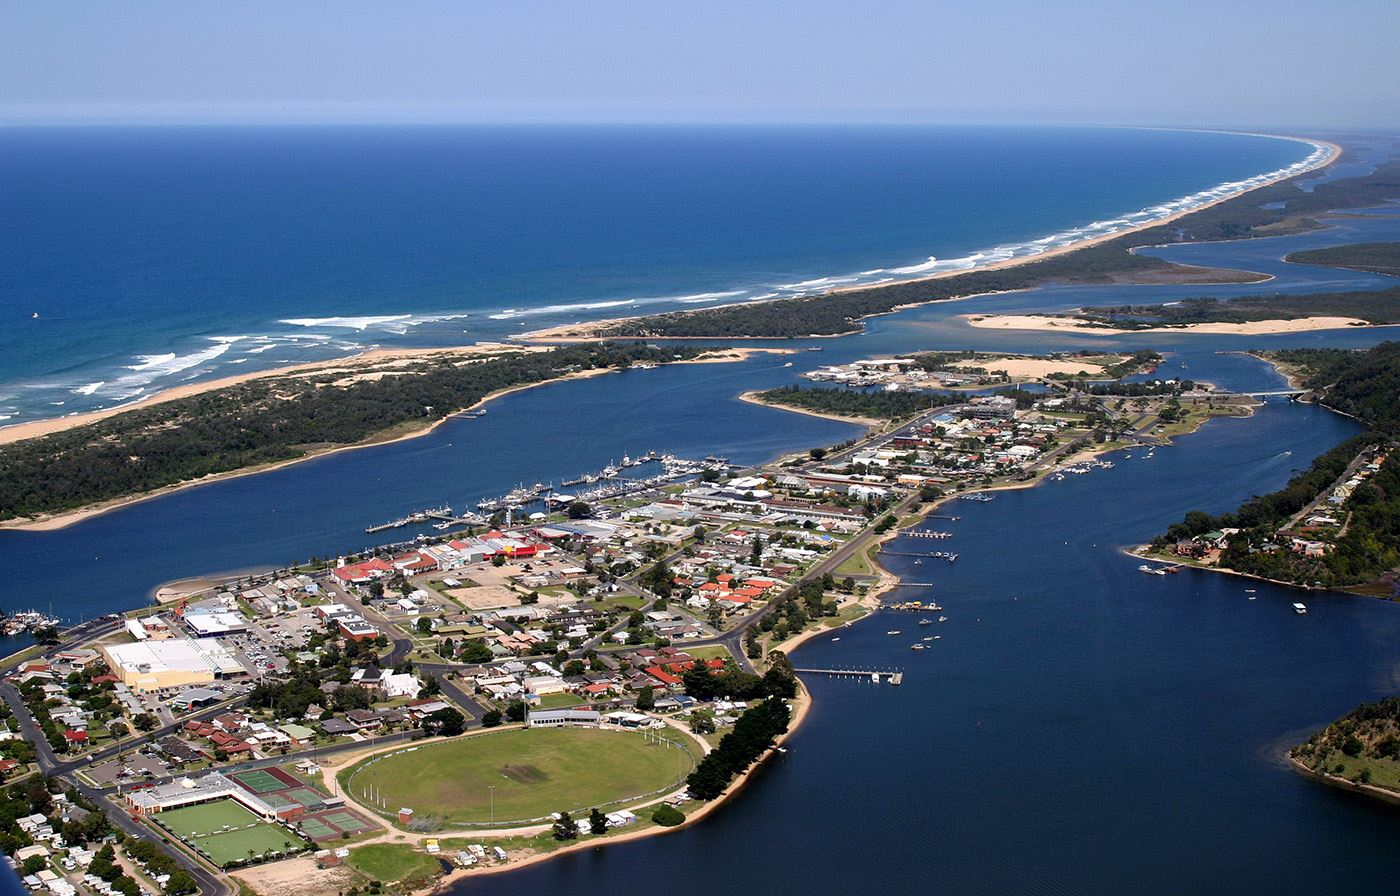 Australian Beach Games Lakes Entrance